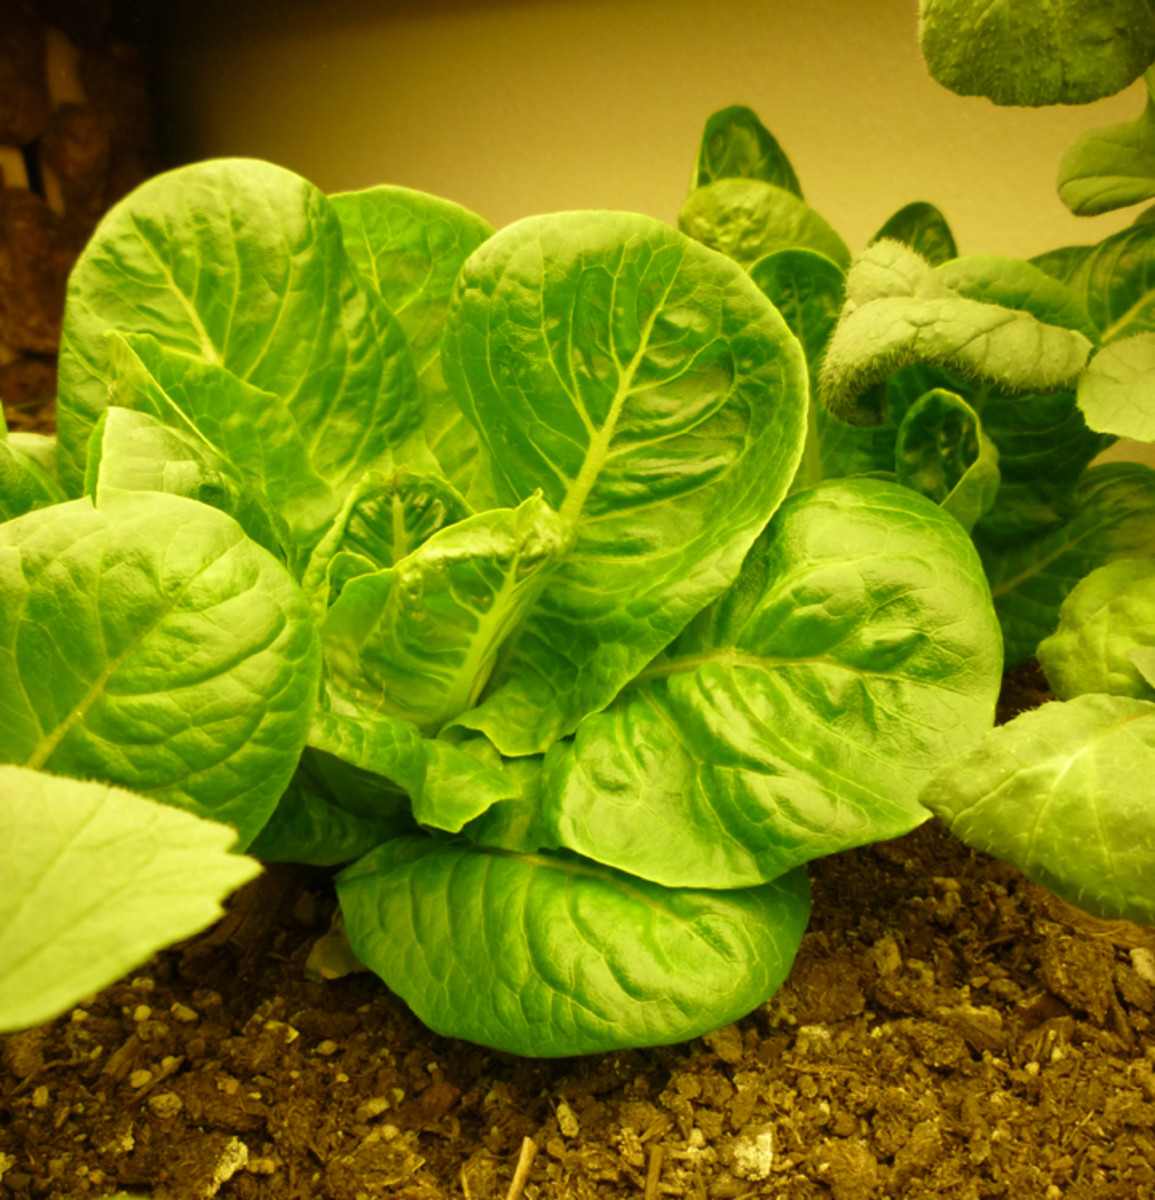 Little Gem Romaine Lettuce. Dark leafy greens are the perfect base for making fish food. Of course, organic homegrown greens are even better!